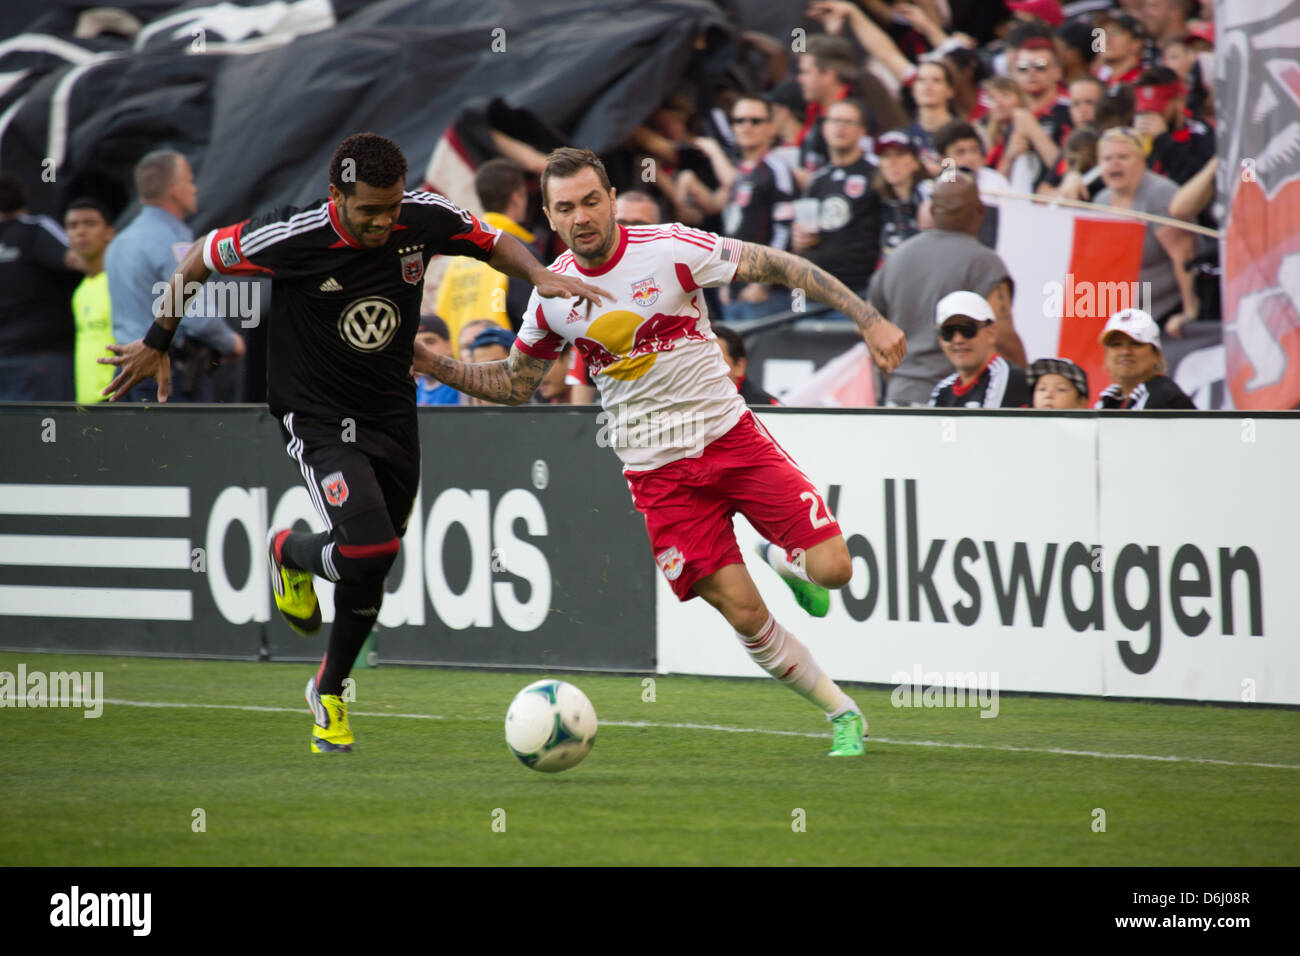 April 13th 2013 D.C. United midfielder Raphael Augusto (12) fights for the ball with NY RedBulls (27) Kosuke Kimura. - Stock Image